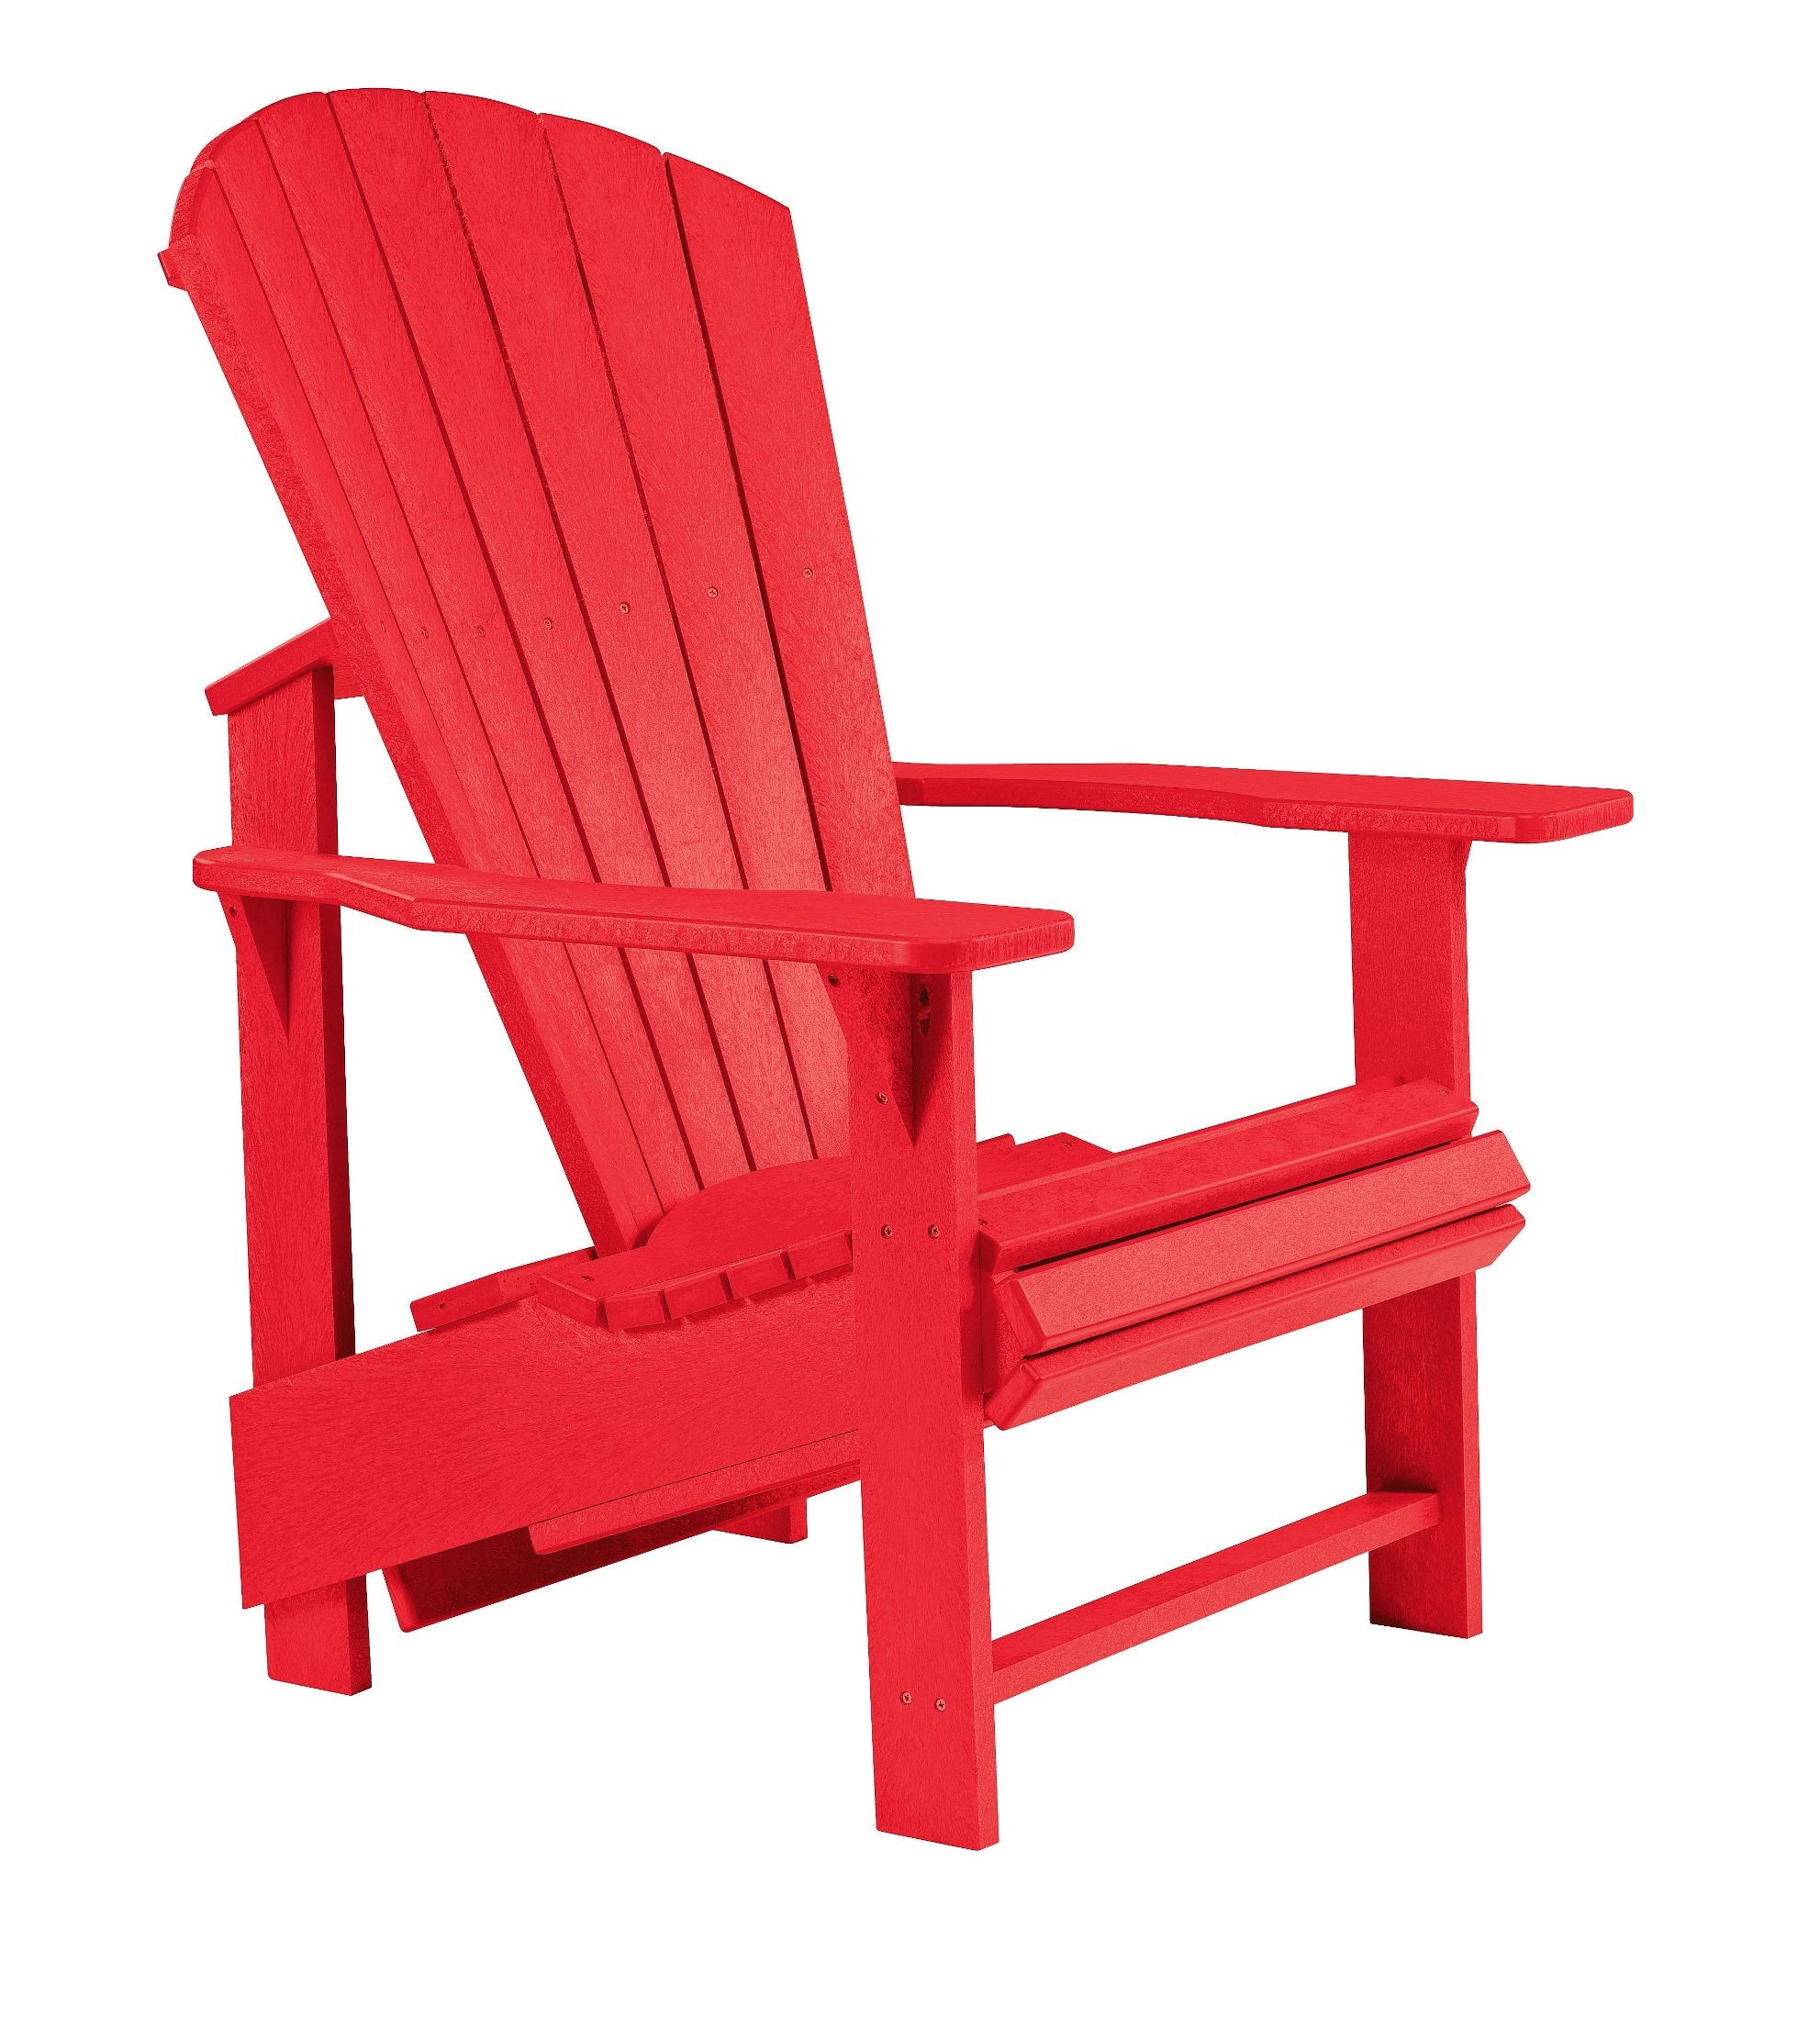 Red Adirondack Chairs Generations Red Upright Adirondack Chair From Cr Plastic